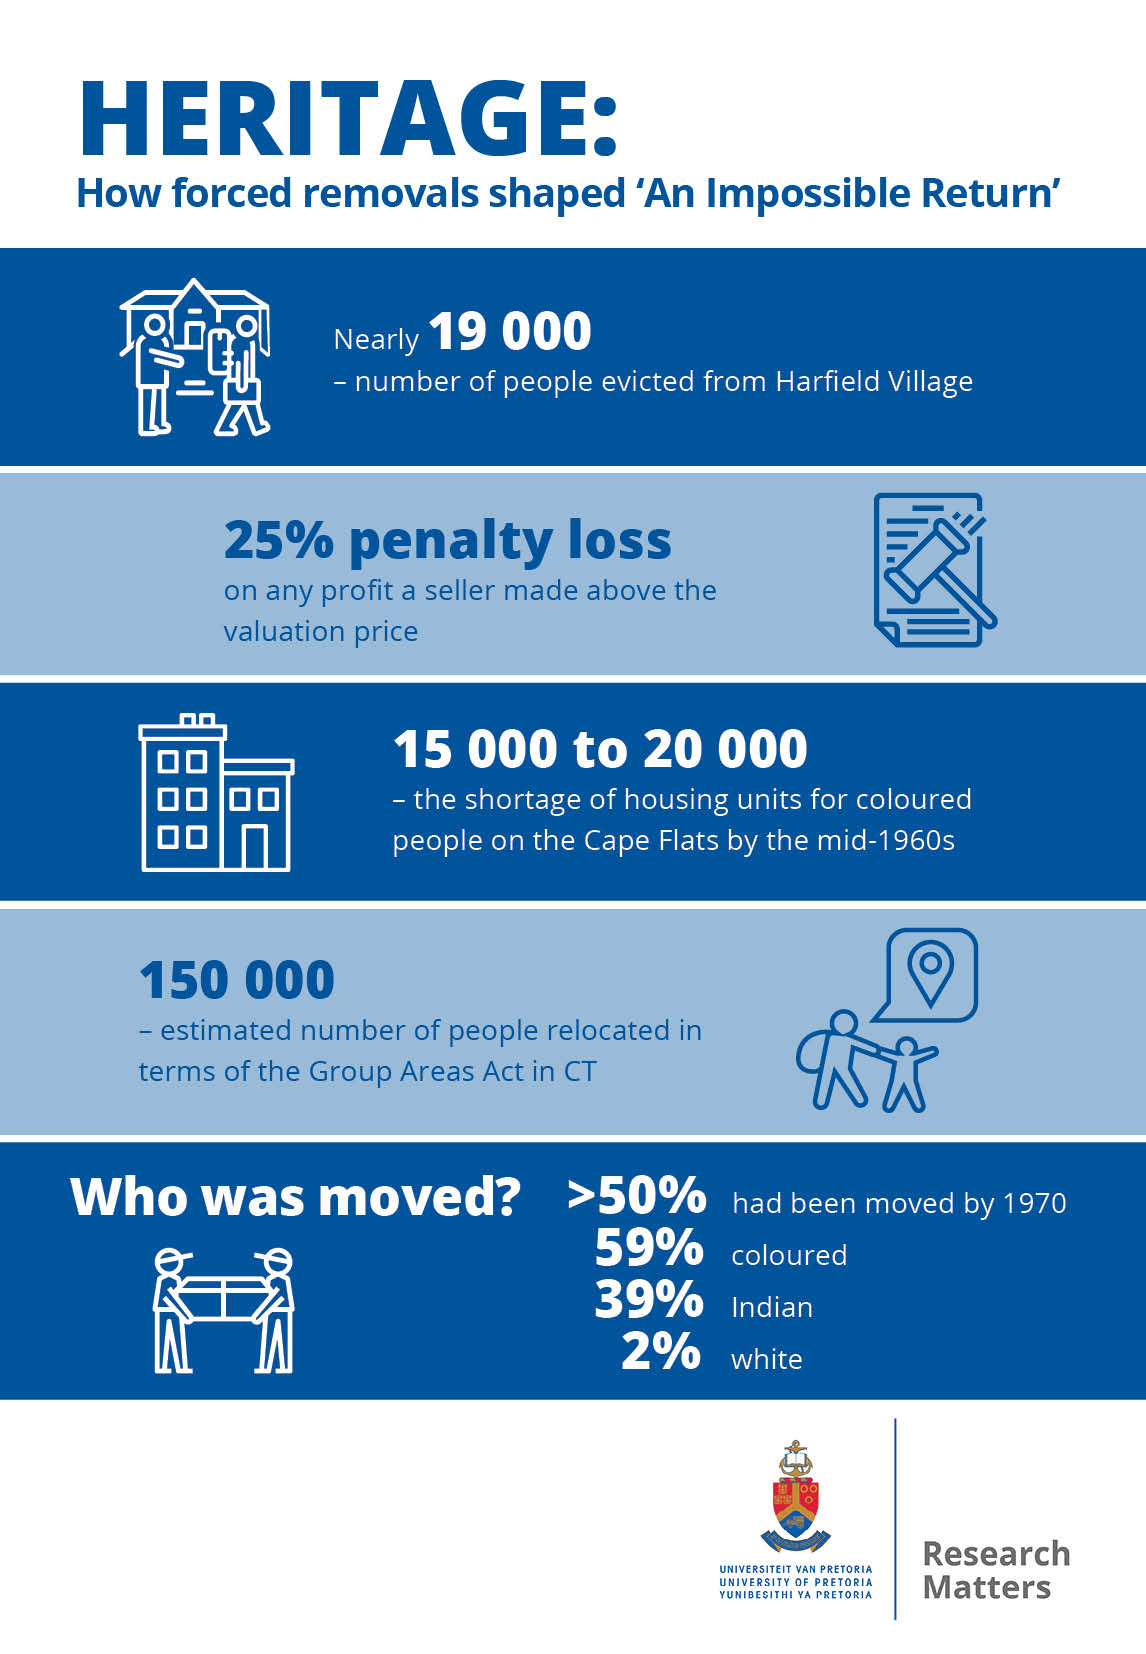 Infographic showing statistics of forced removals at harfield village